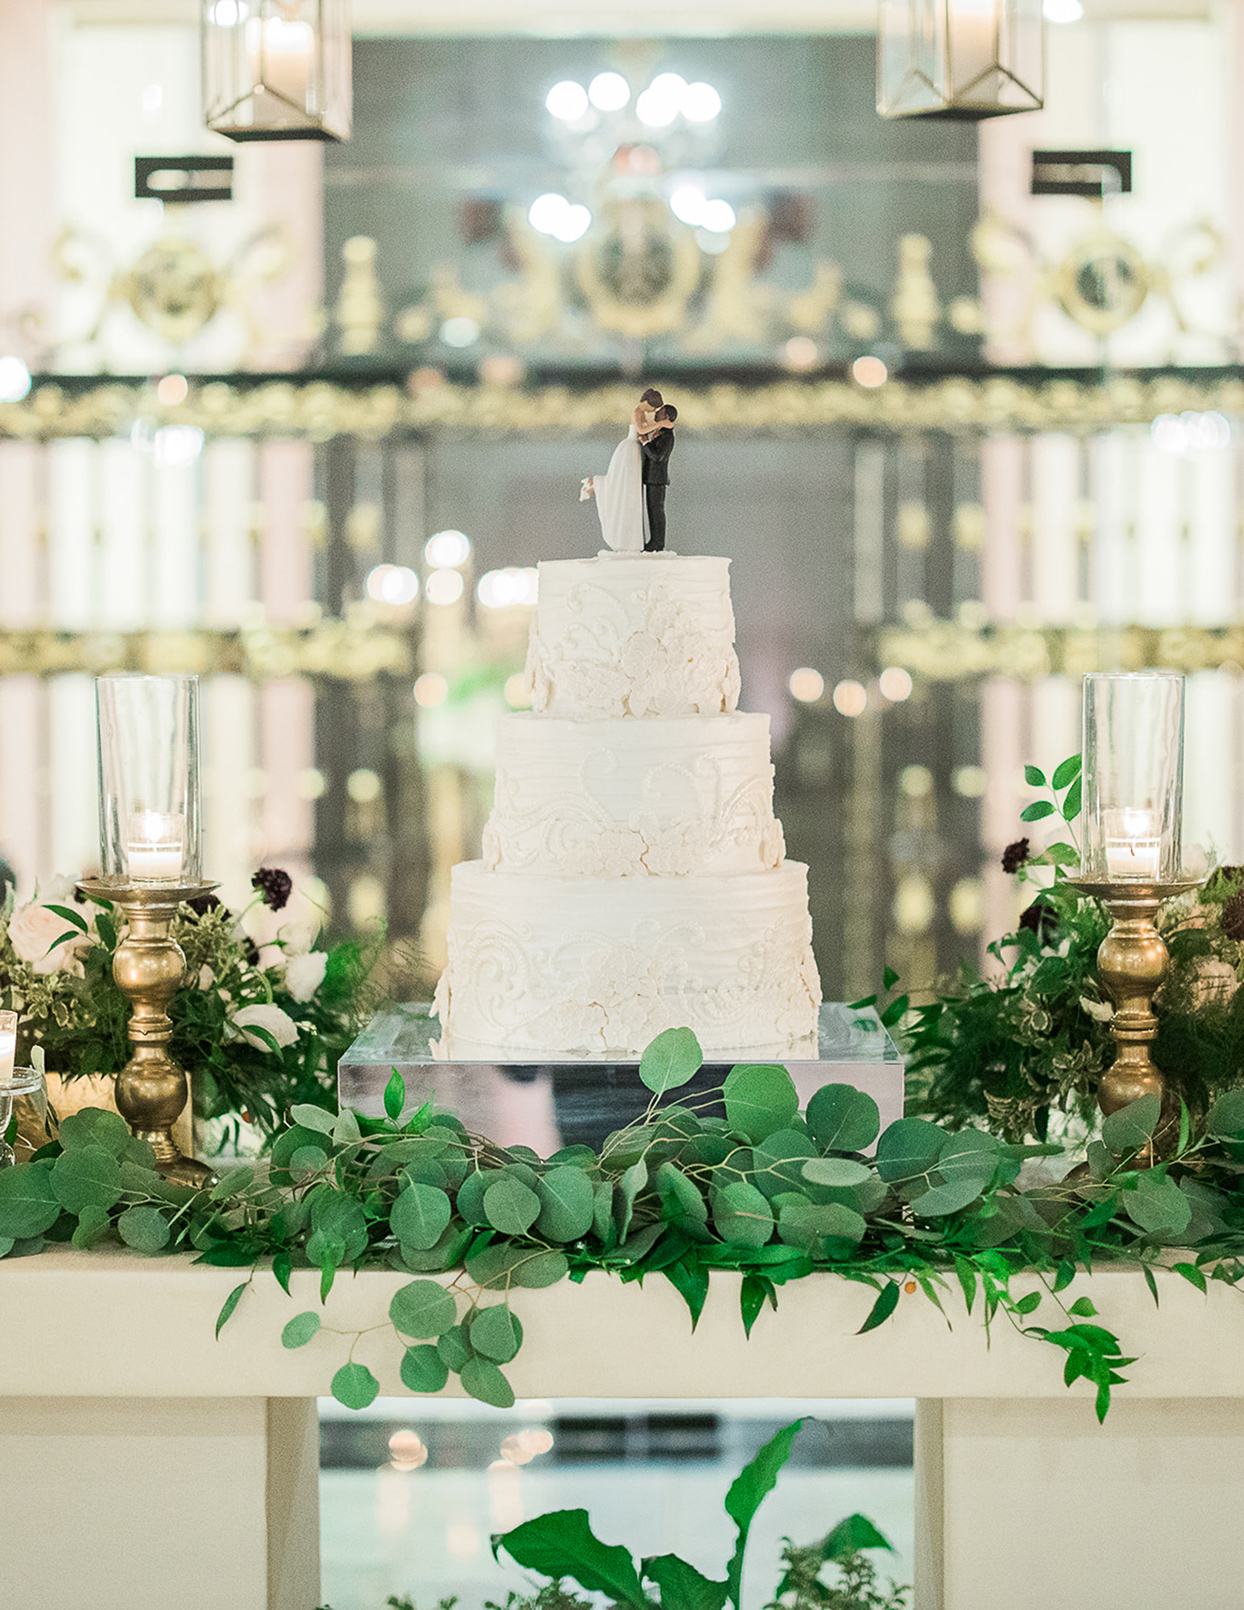 victoria tk wedding cake surrounded by greenery